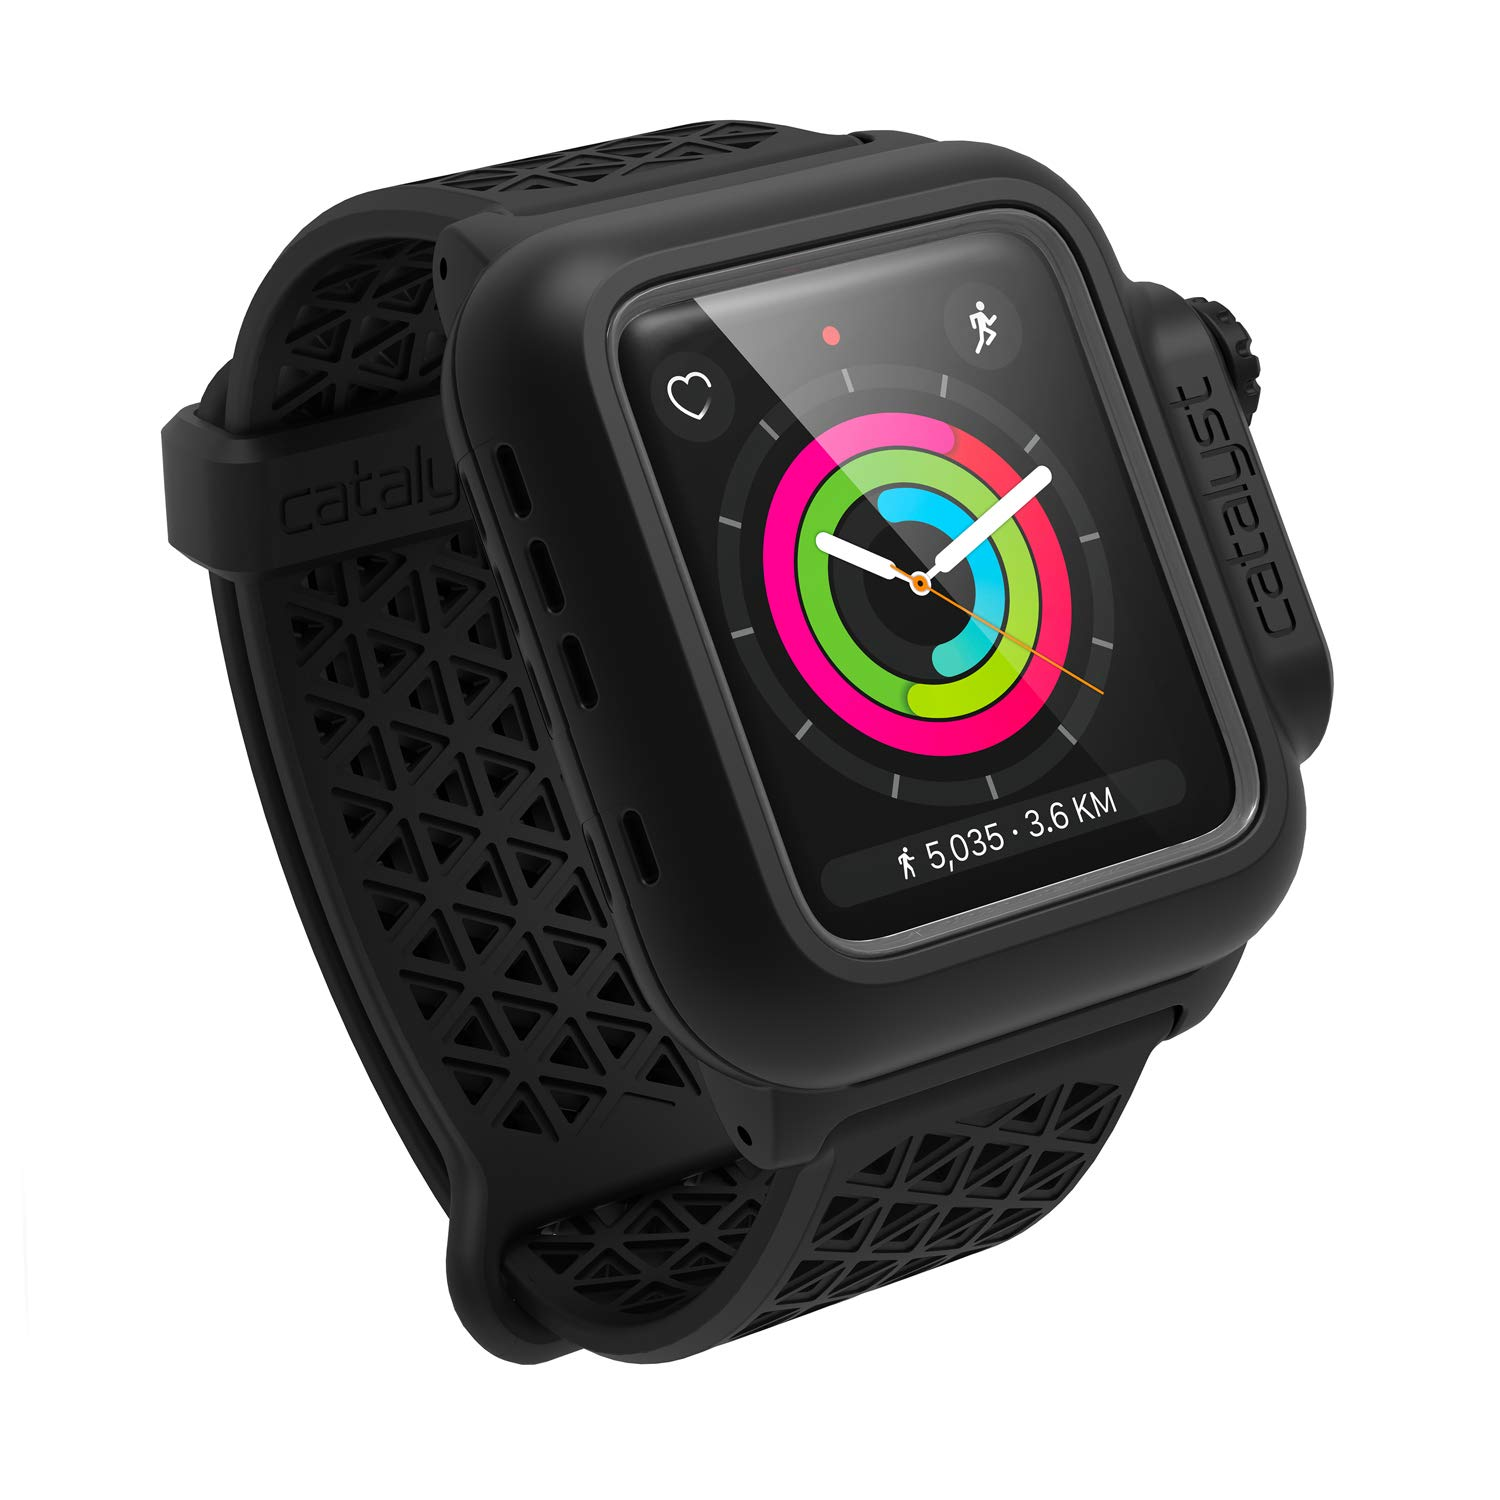 online retailer baac1 f3bef Waterproof Case for Apple Watch 42mm Series 2 & 3 with Premium Soft  Silicone Apple Watch Band by Catalyst, Shock Proof Impact Resistant [Rugged  iWatch ...